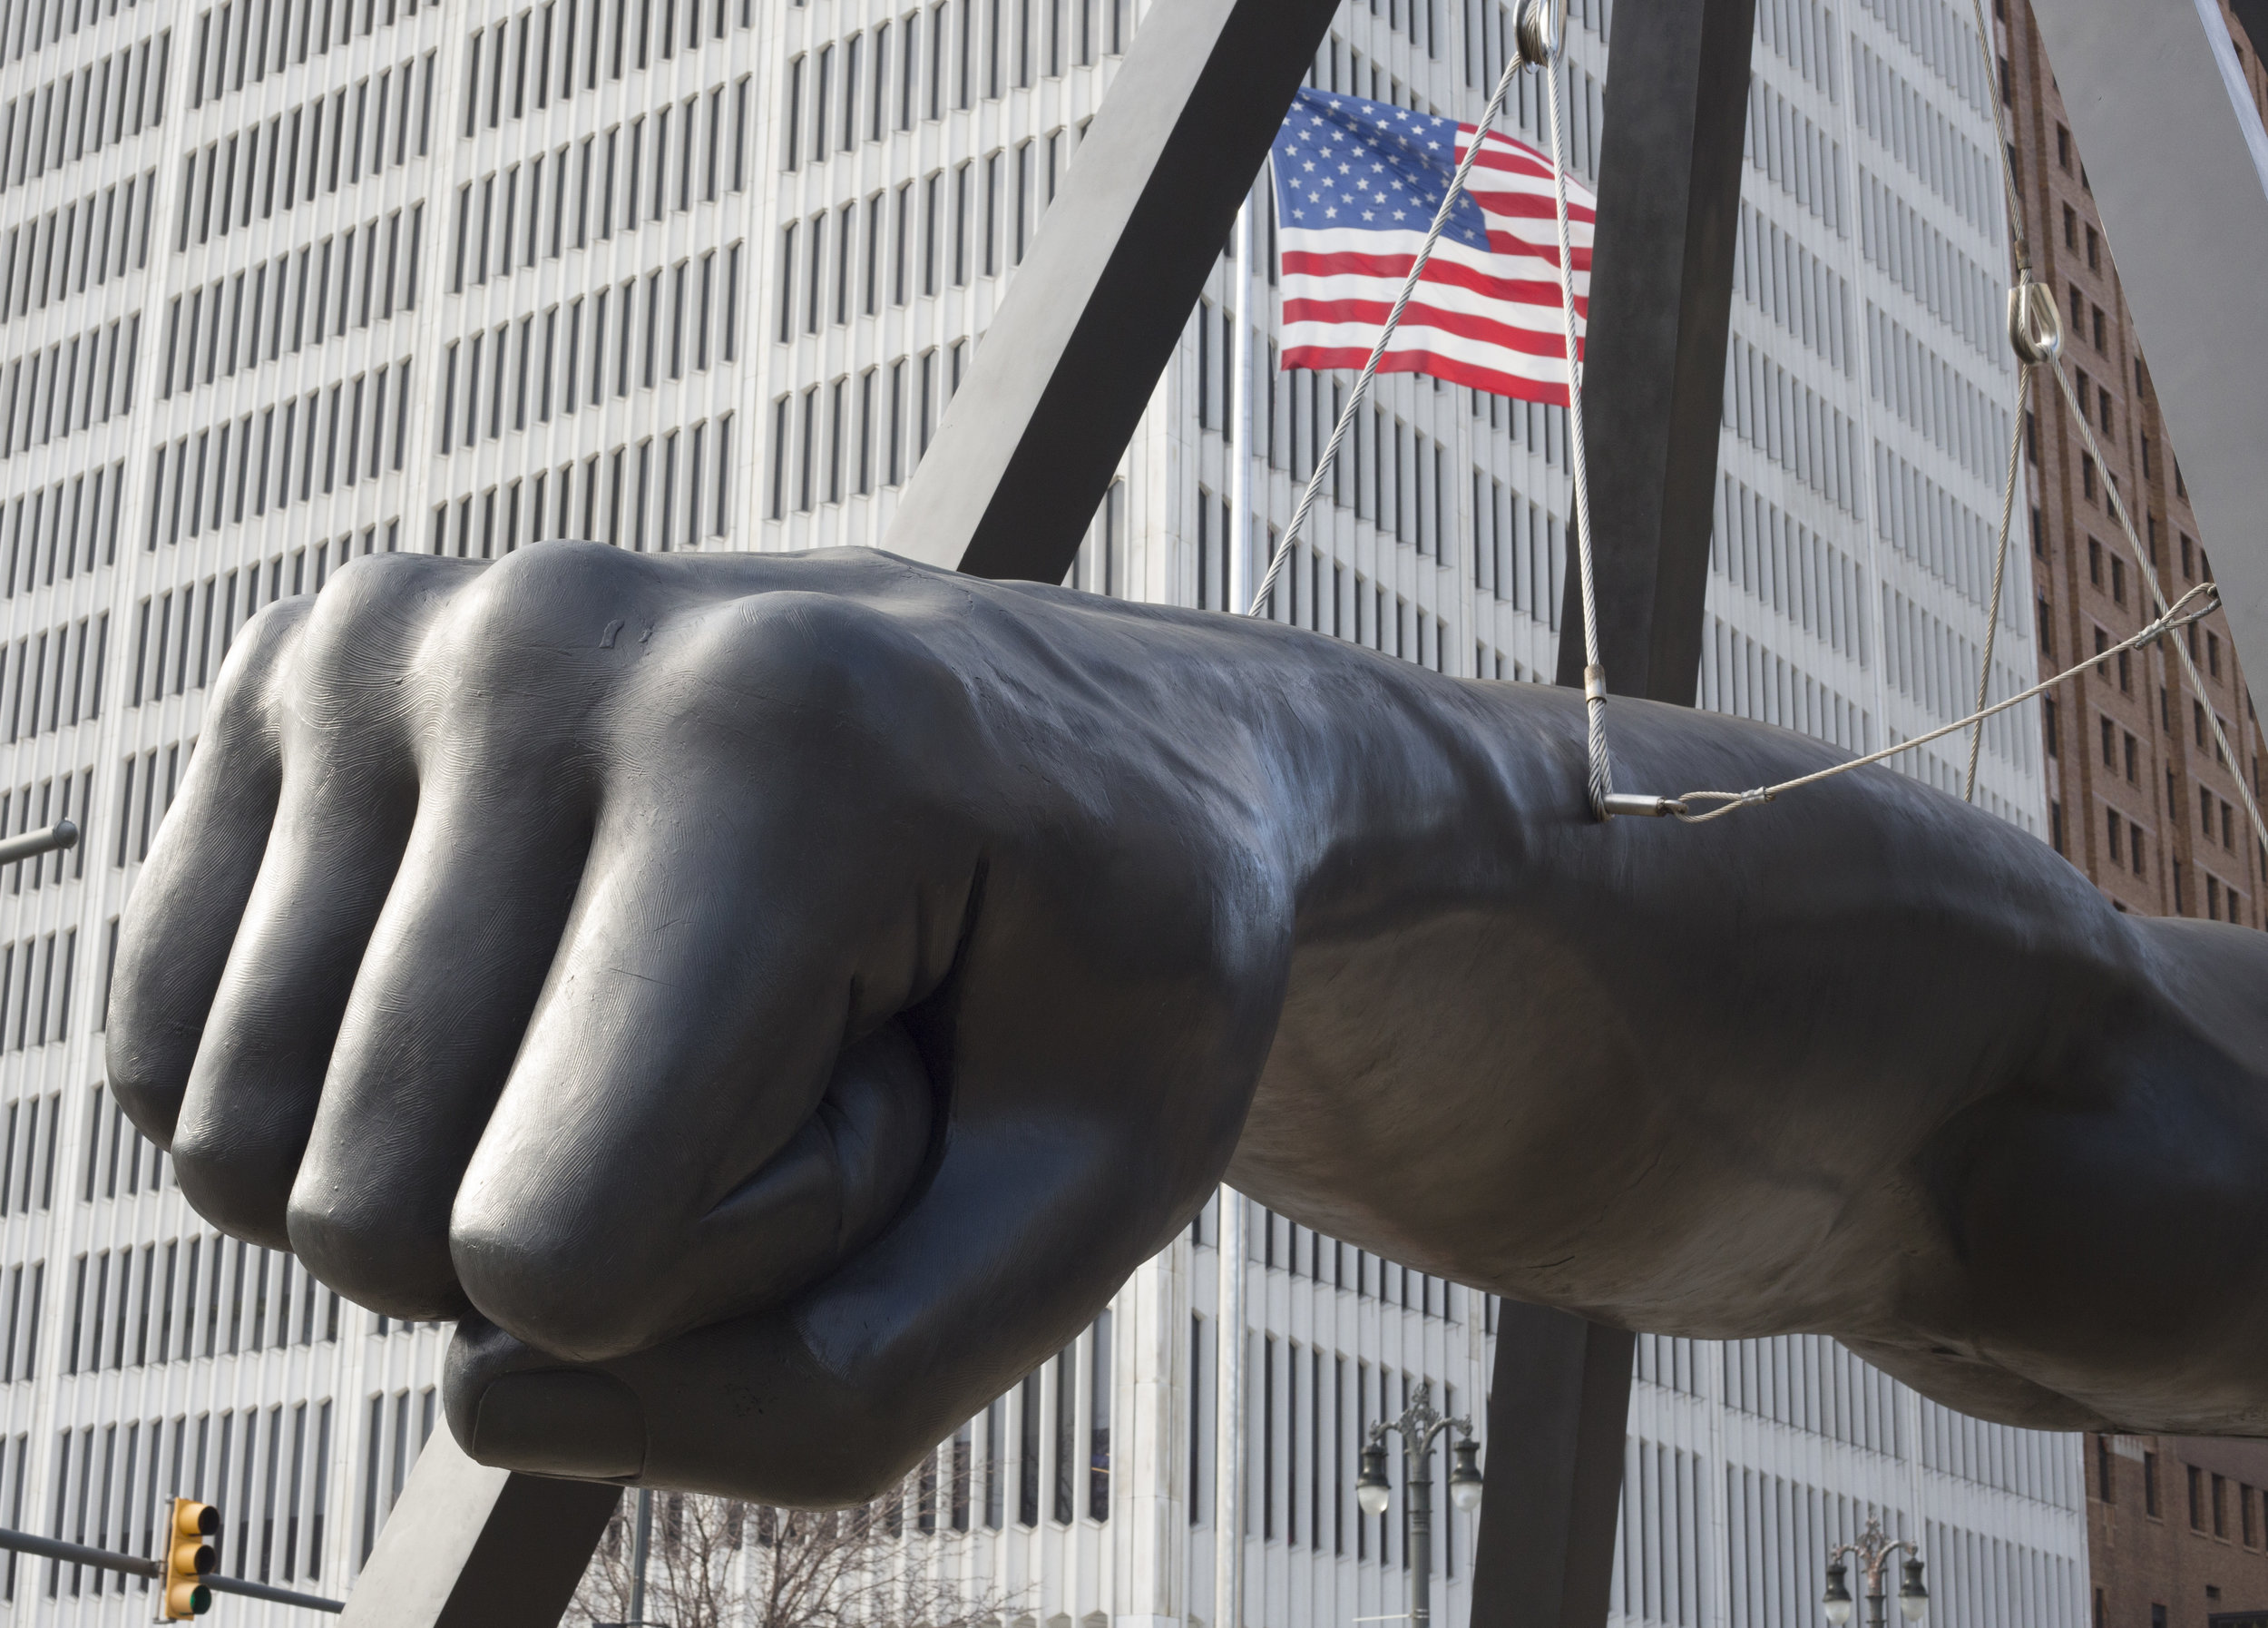 """The Fist"" stands boldly in the middle of Woodward Avenue as a monument to the infamous boxer, Joe Louis."